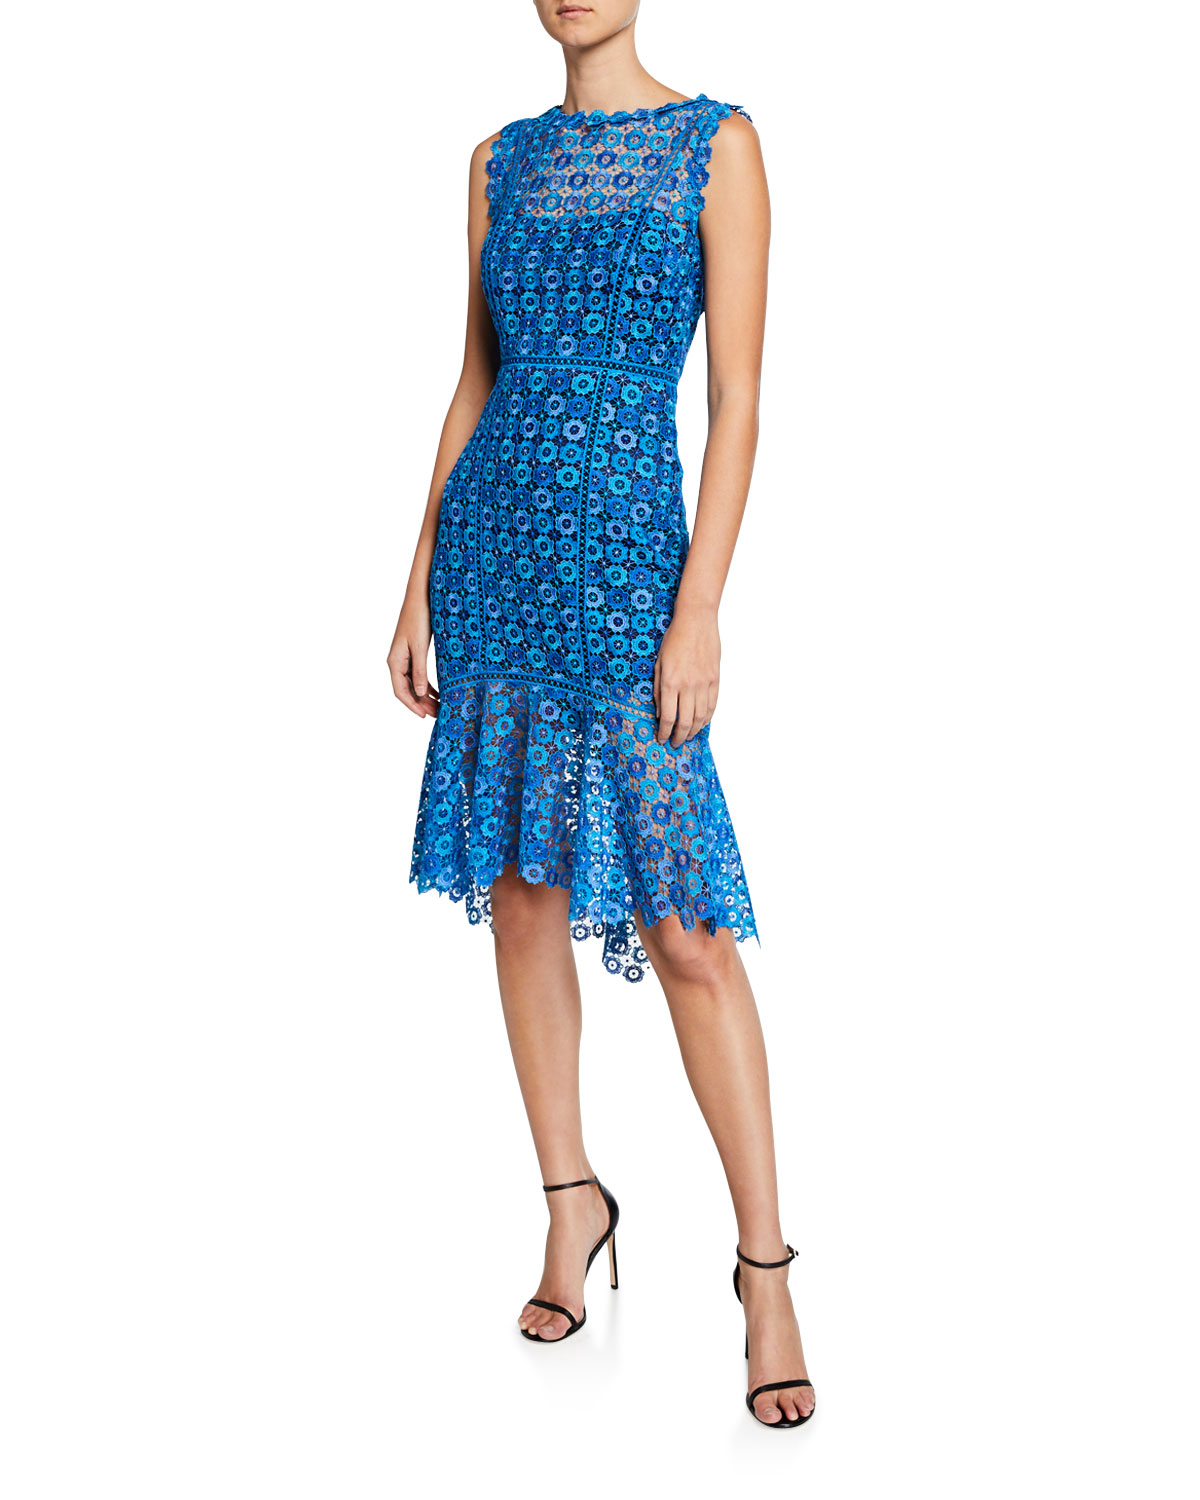 Elie Tahari Dresses BREANNA HIGH-NECK SLEEVELESS FLORAL LACE DRESS